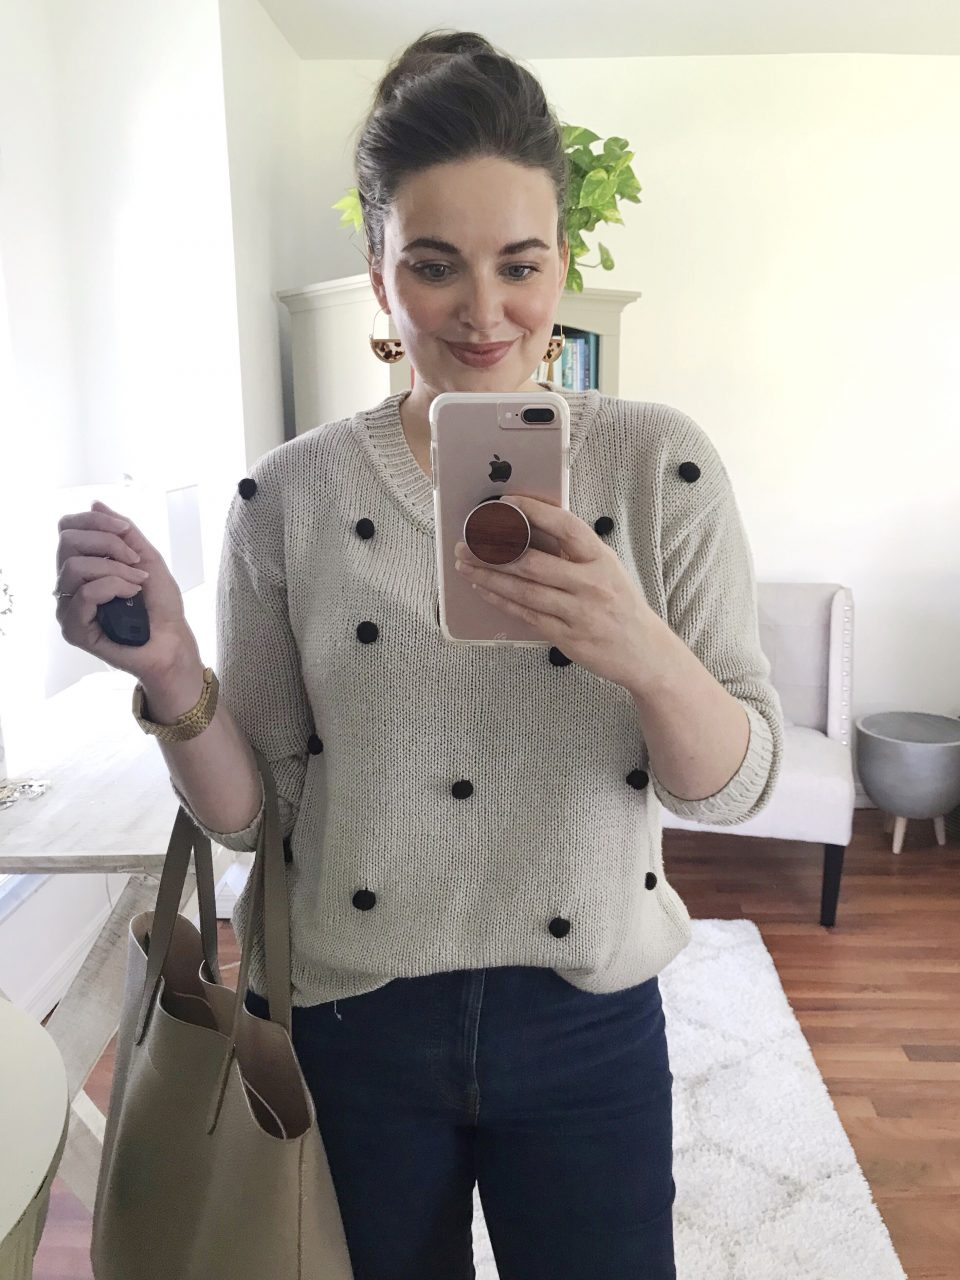 Style blogger wearing a gray sweater accented with black pom-poms and Everlane authentic stretch hi-rise skinny jeans in dark blue.